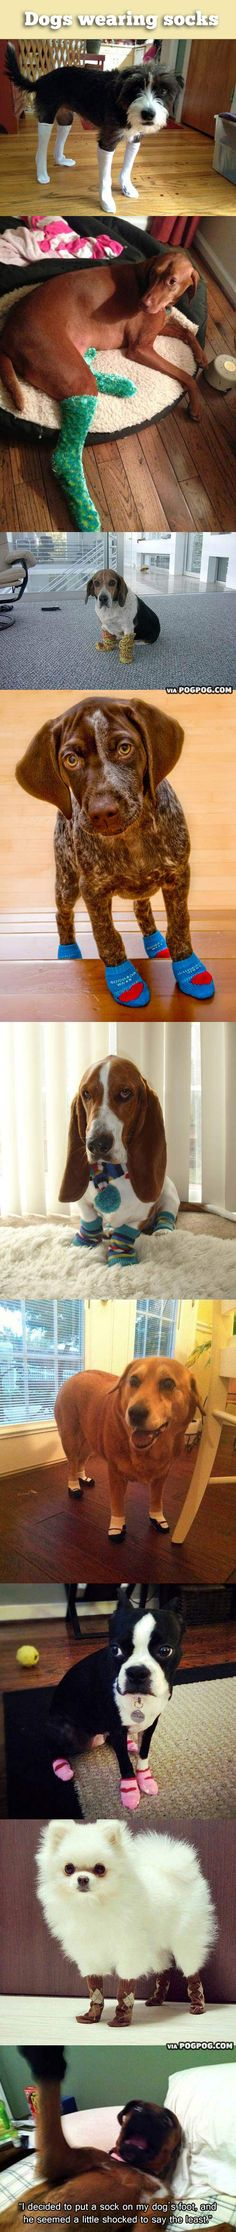 Dogs wearing socks